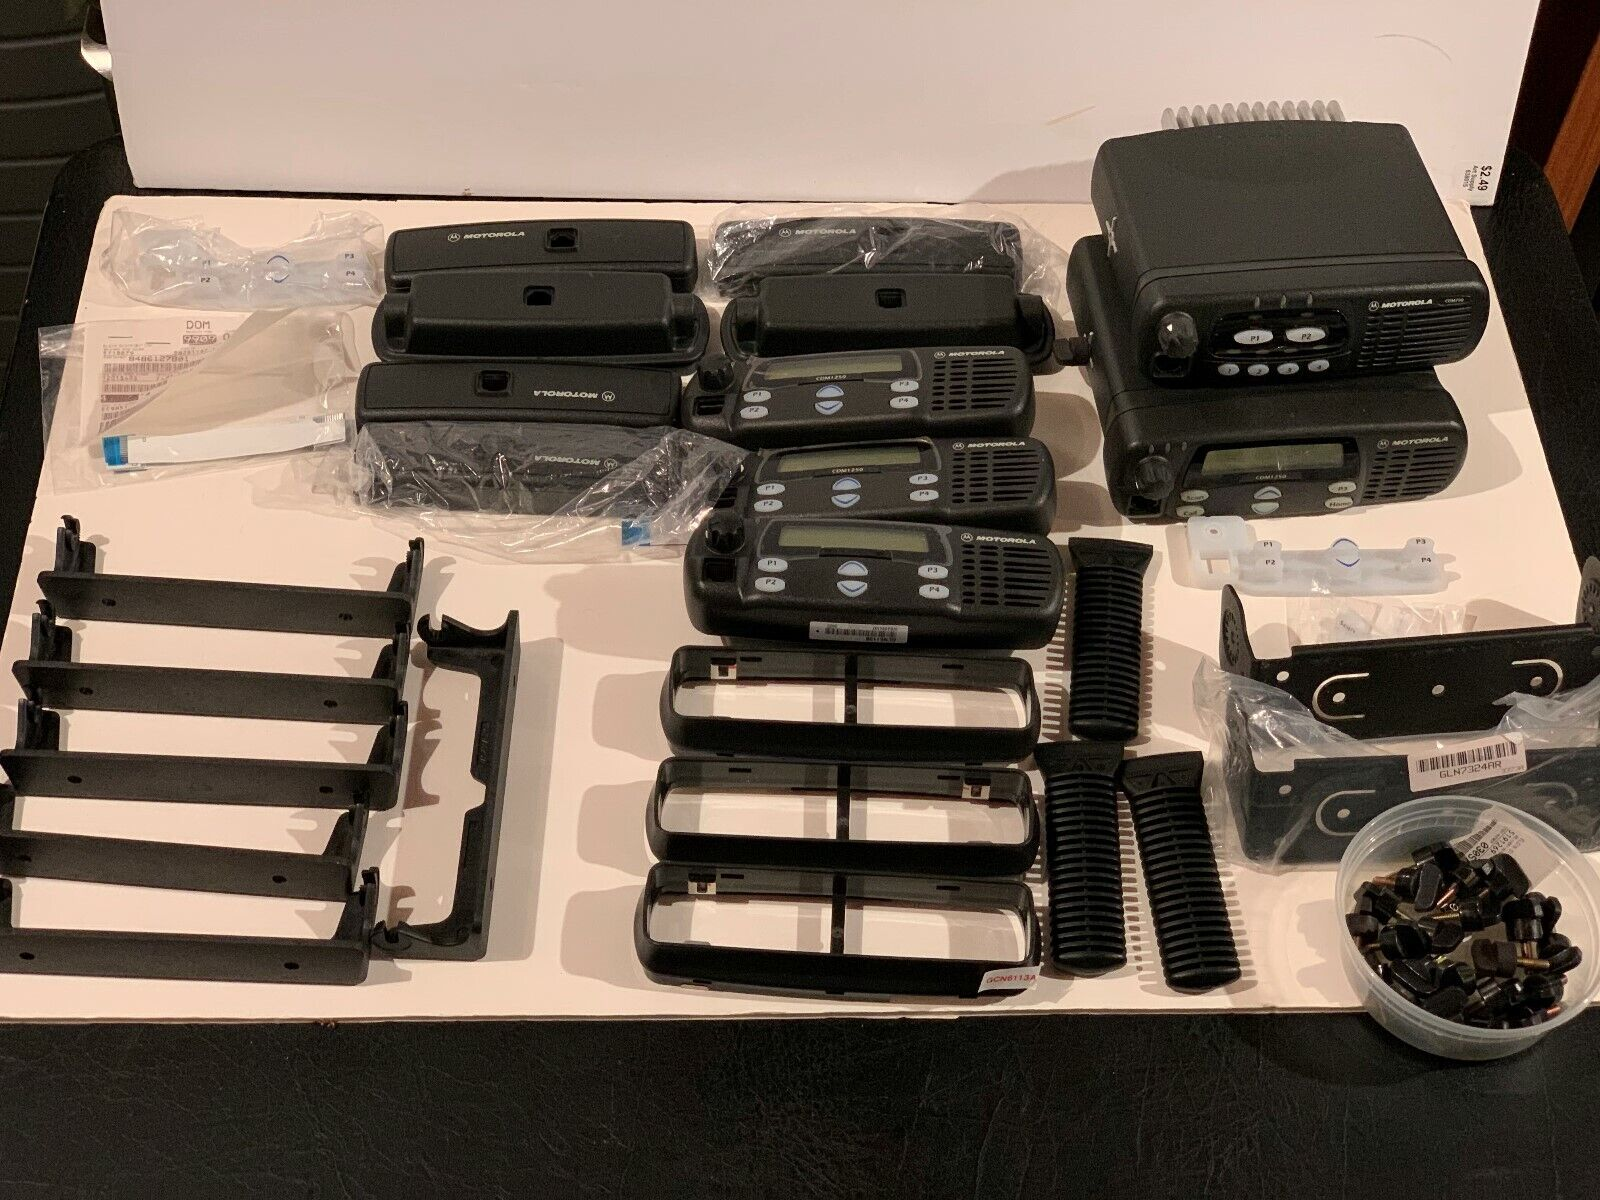 MOTOROLA CDM 1250 AND ACCESSORIES. Buy it now for 290.00